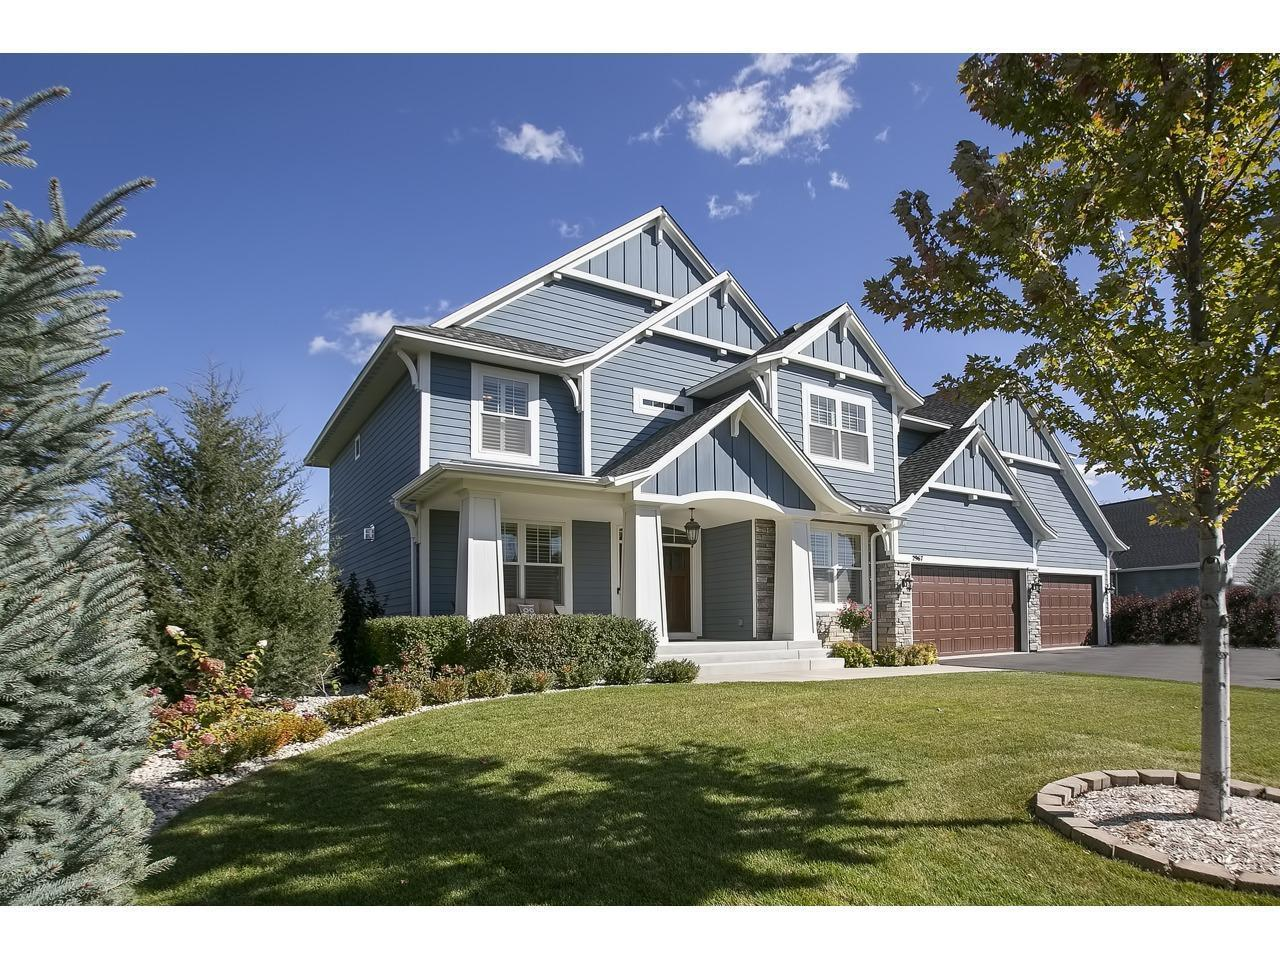 2967 Fairway Drive Property Photo - Chaska, MN real estate listing